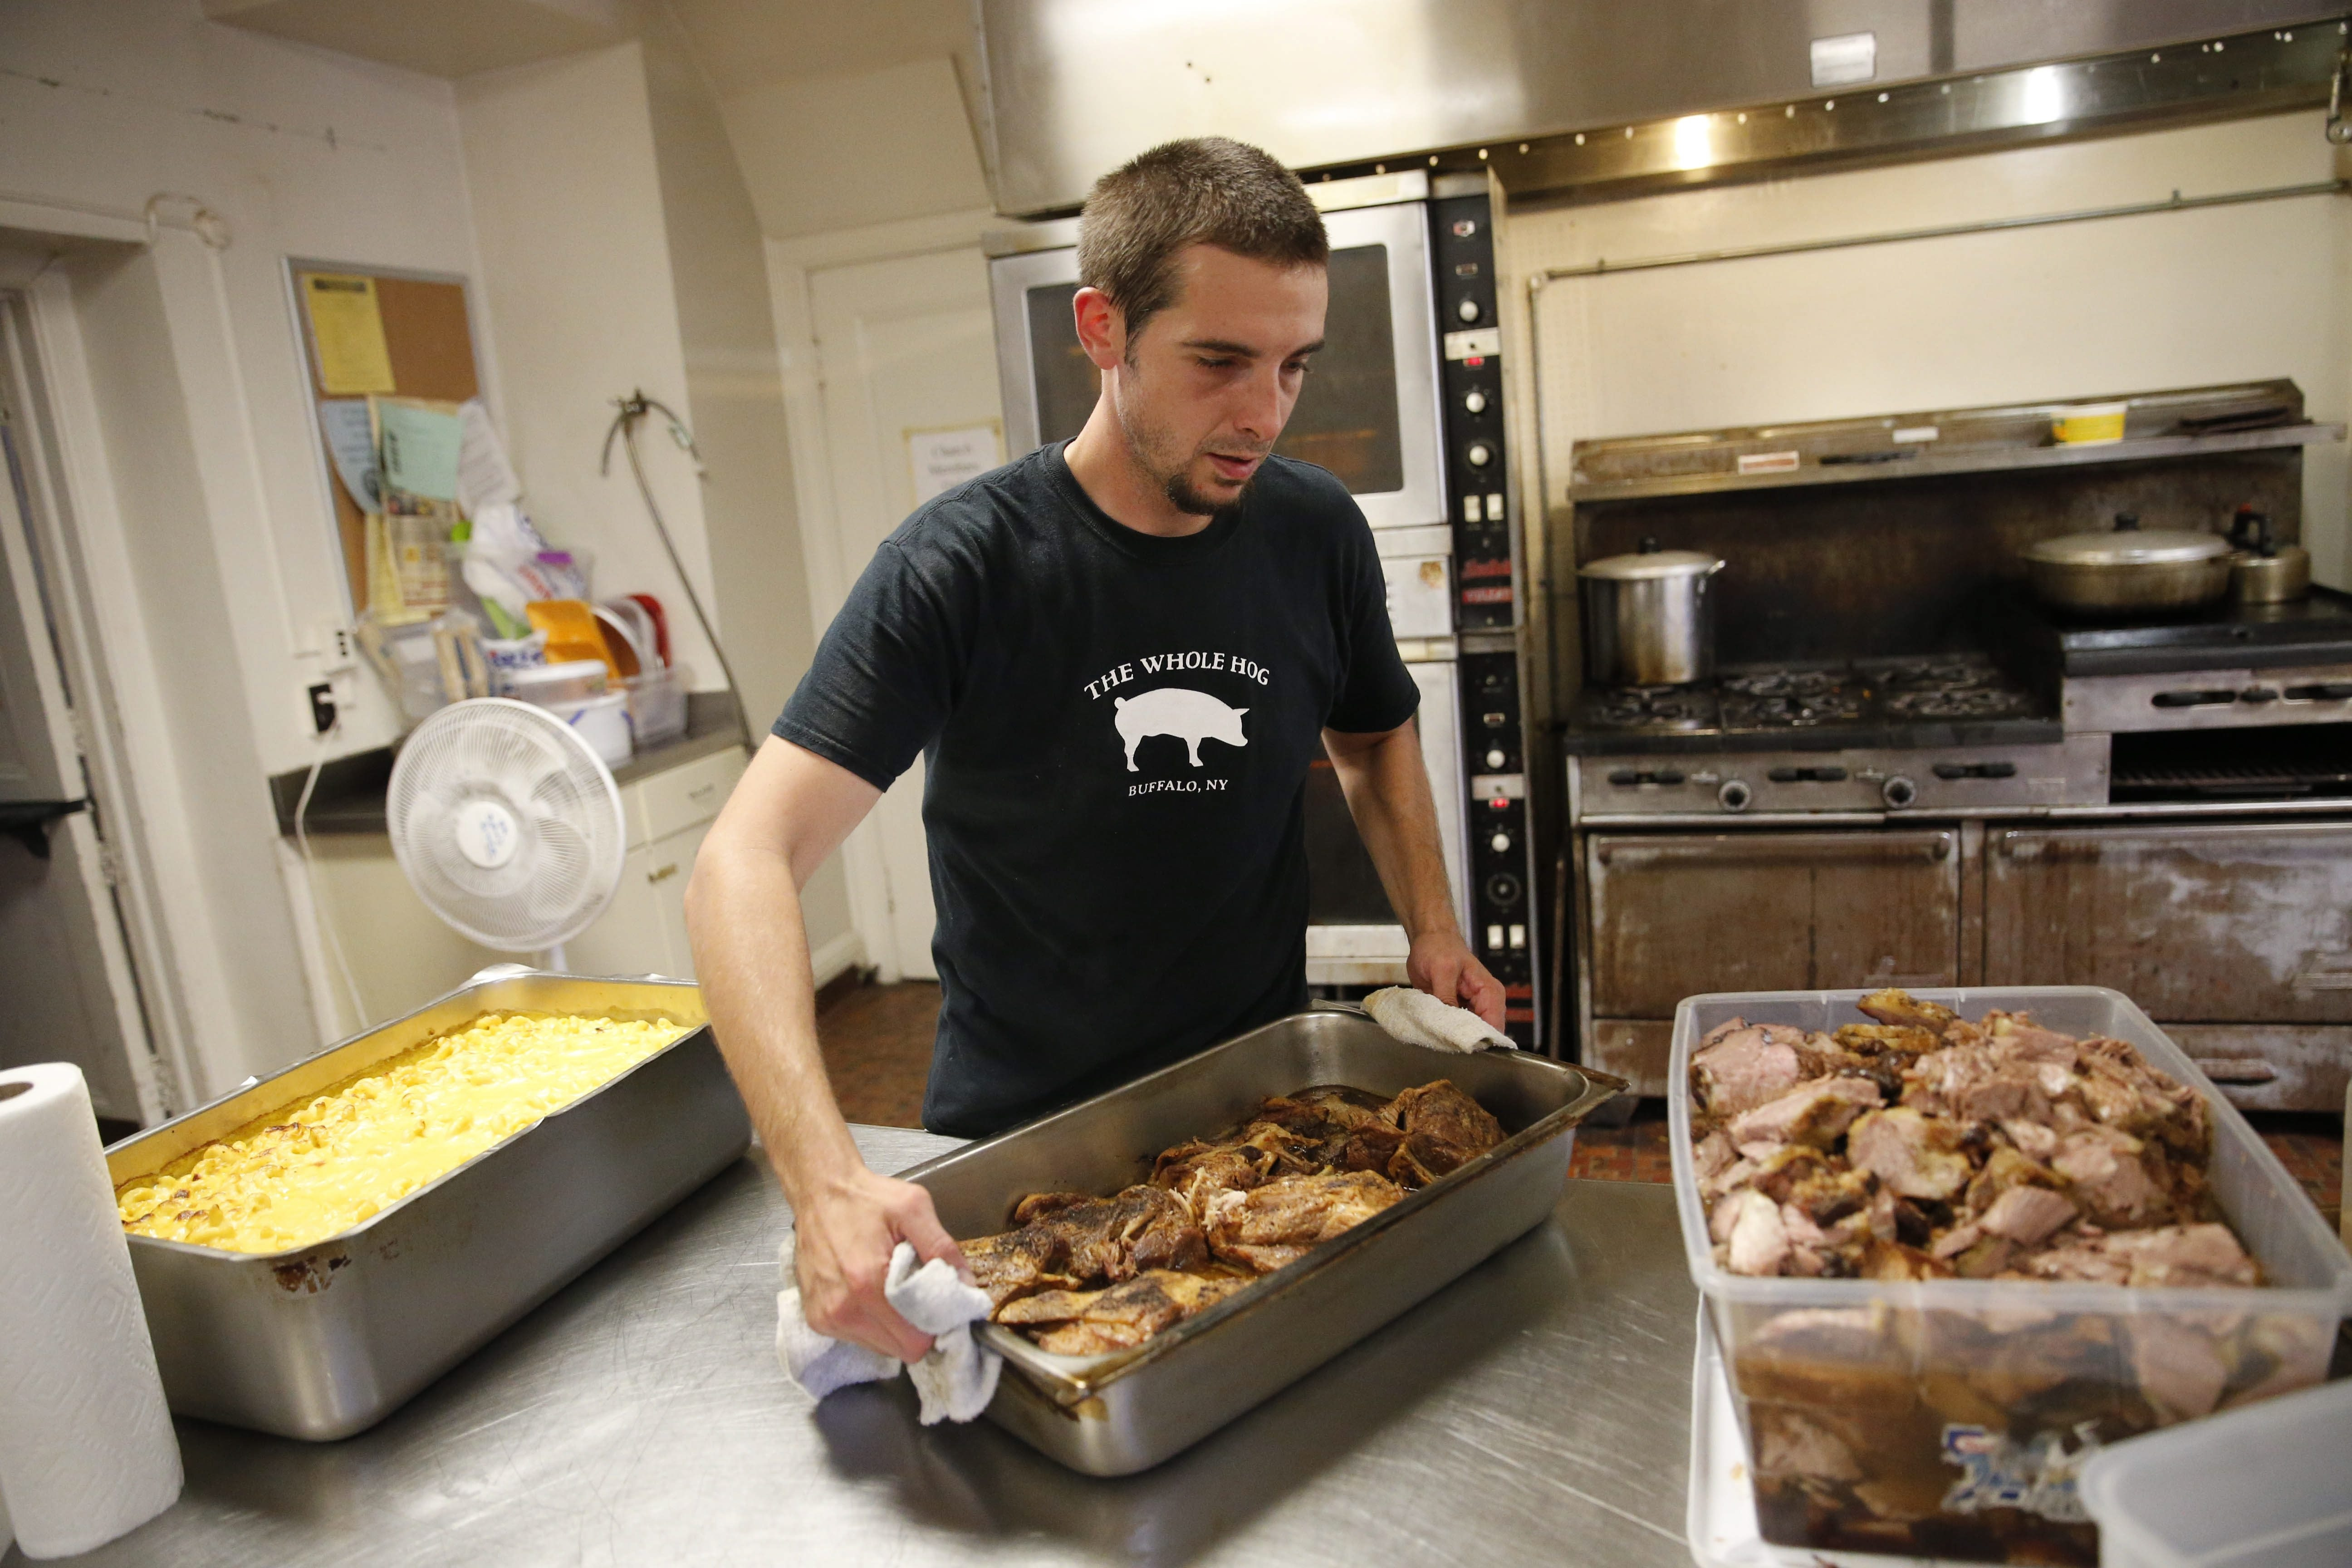 Matthew Simpson, a cook for the Whole Hog food truck, prepares food for the day's run in the kitchen at St. John's Grace Episcopal Church on Tuesday.